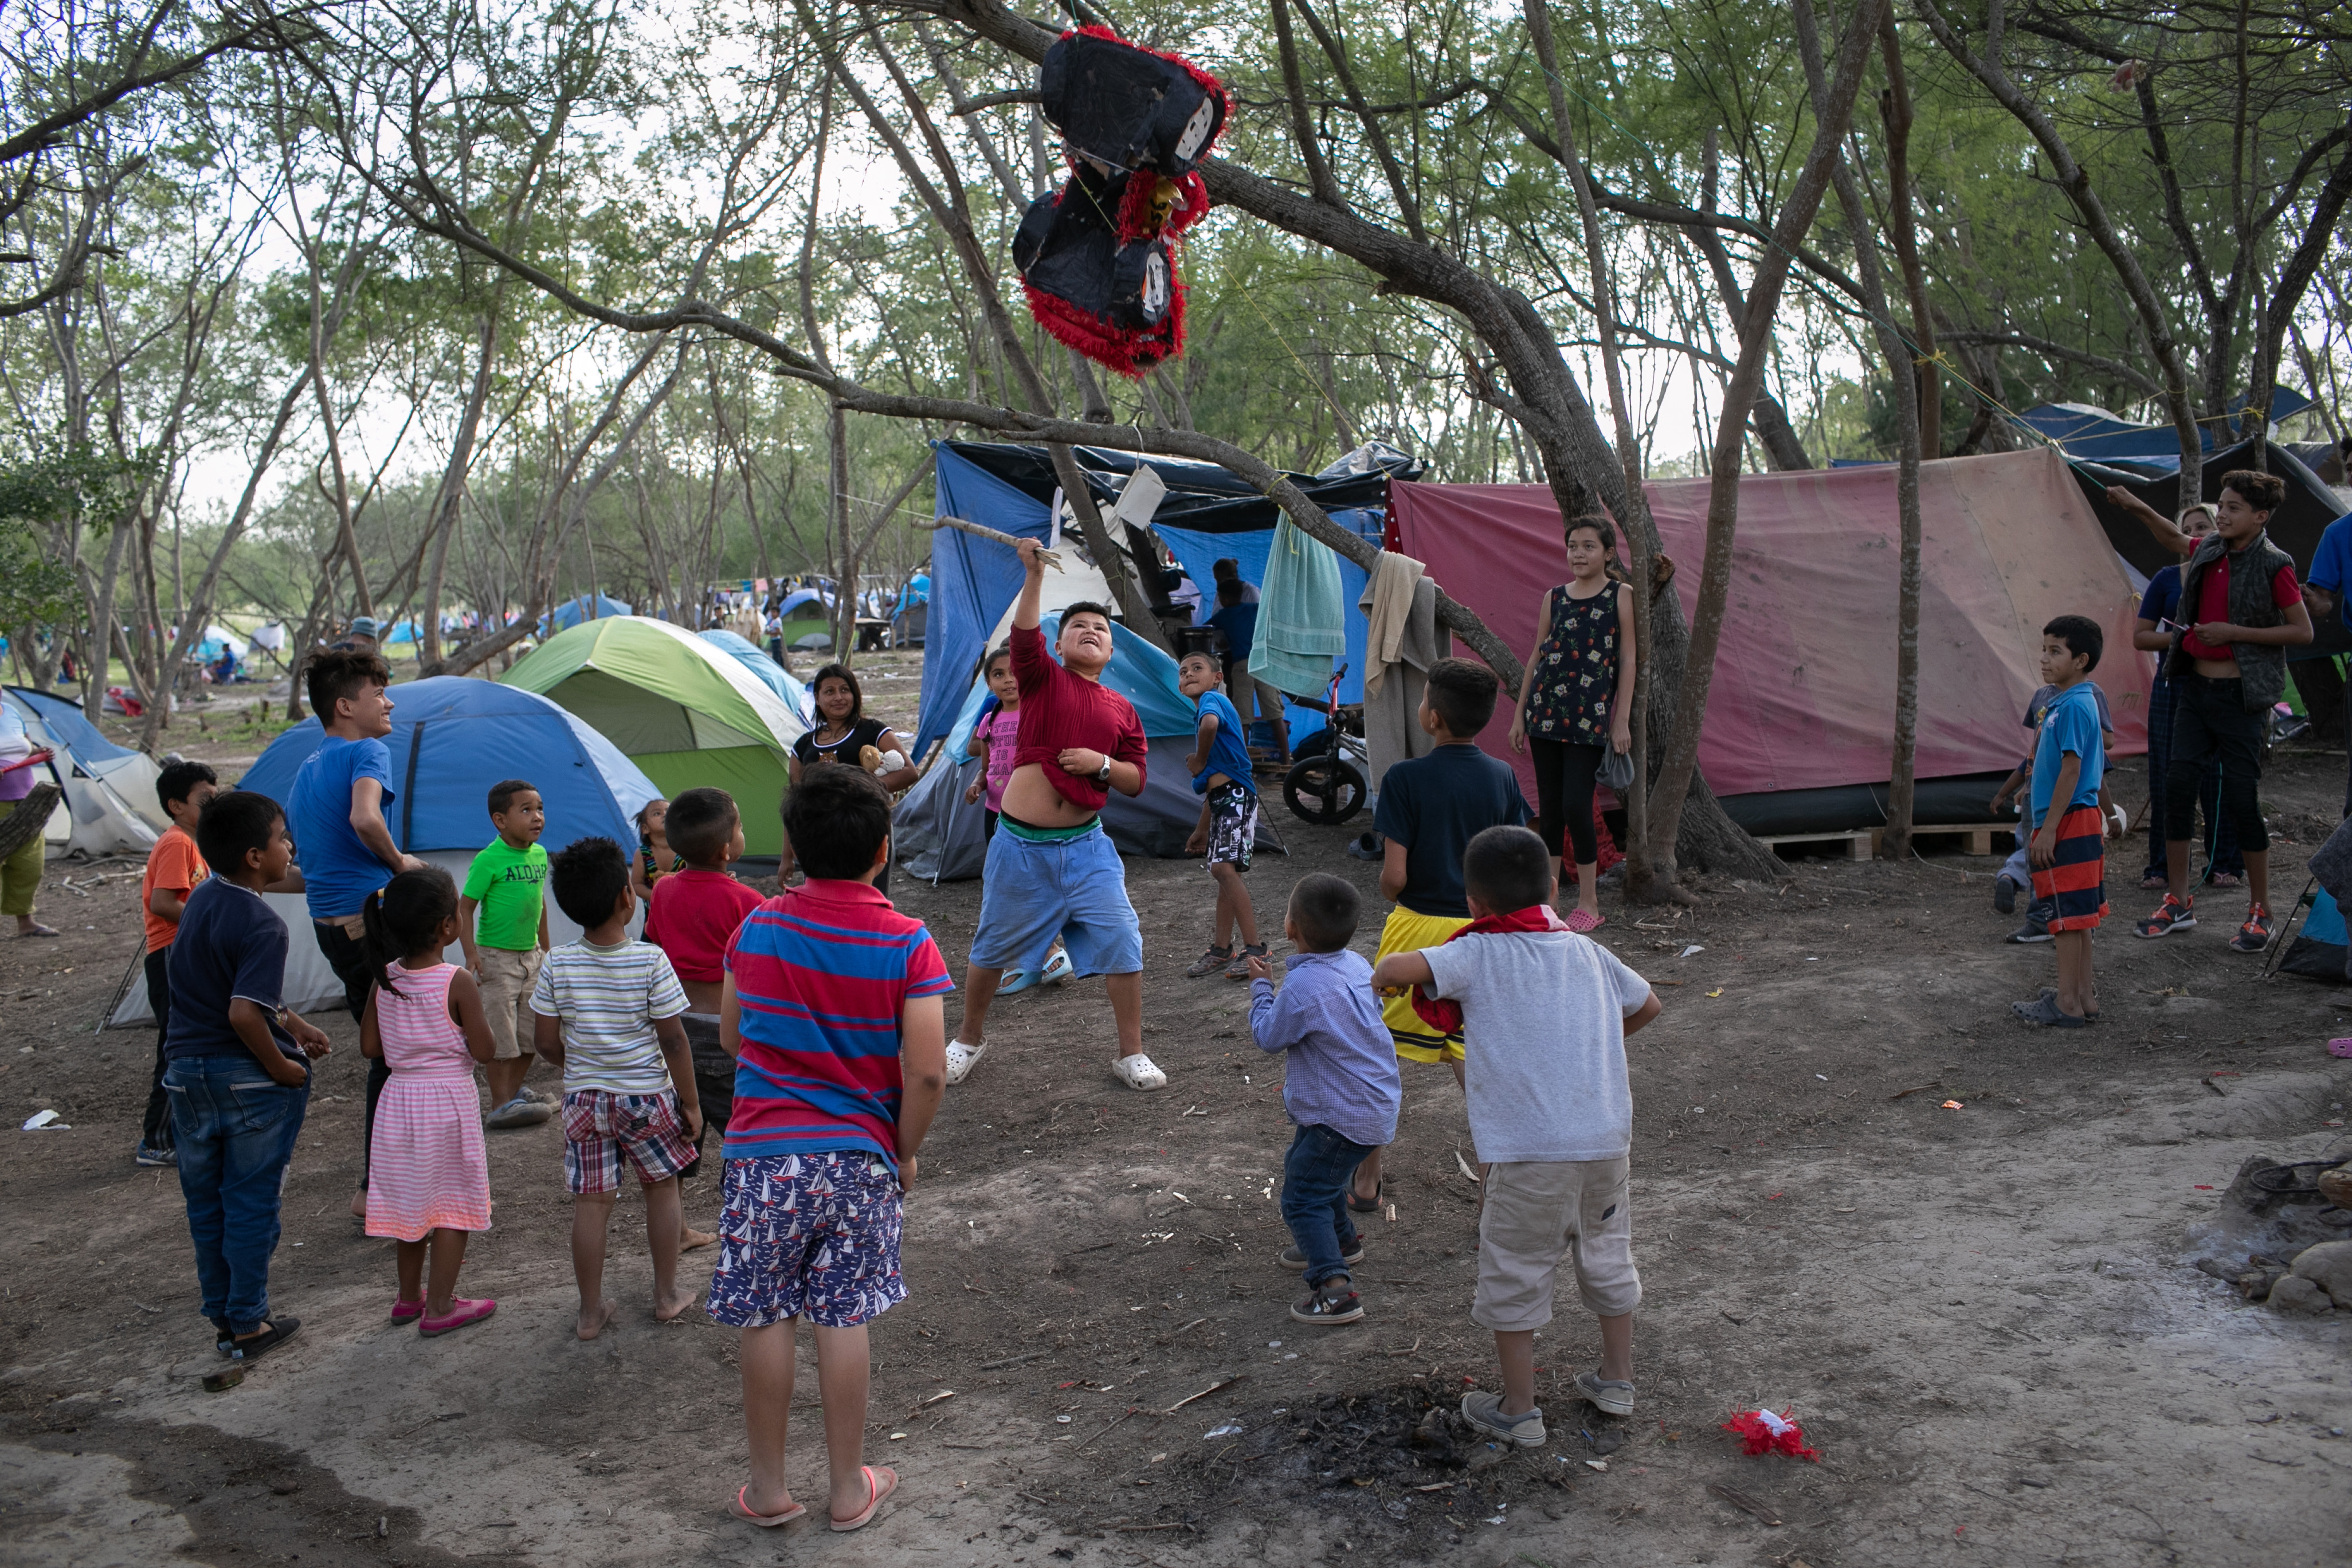 MATAMOROS, MEXICO - DECEMBER 09: Immigrant children break a birthday pinata at a camp for asylum seekers on December 09, 2019 in the border town of Matamoros, Mexico. (Photo by John Moore/Getty Images)